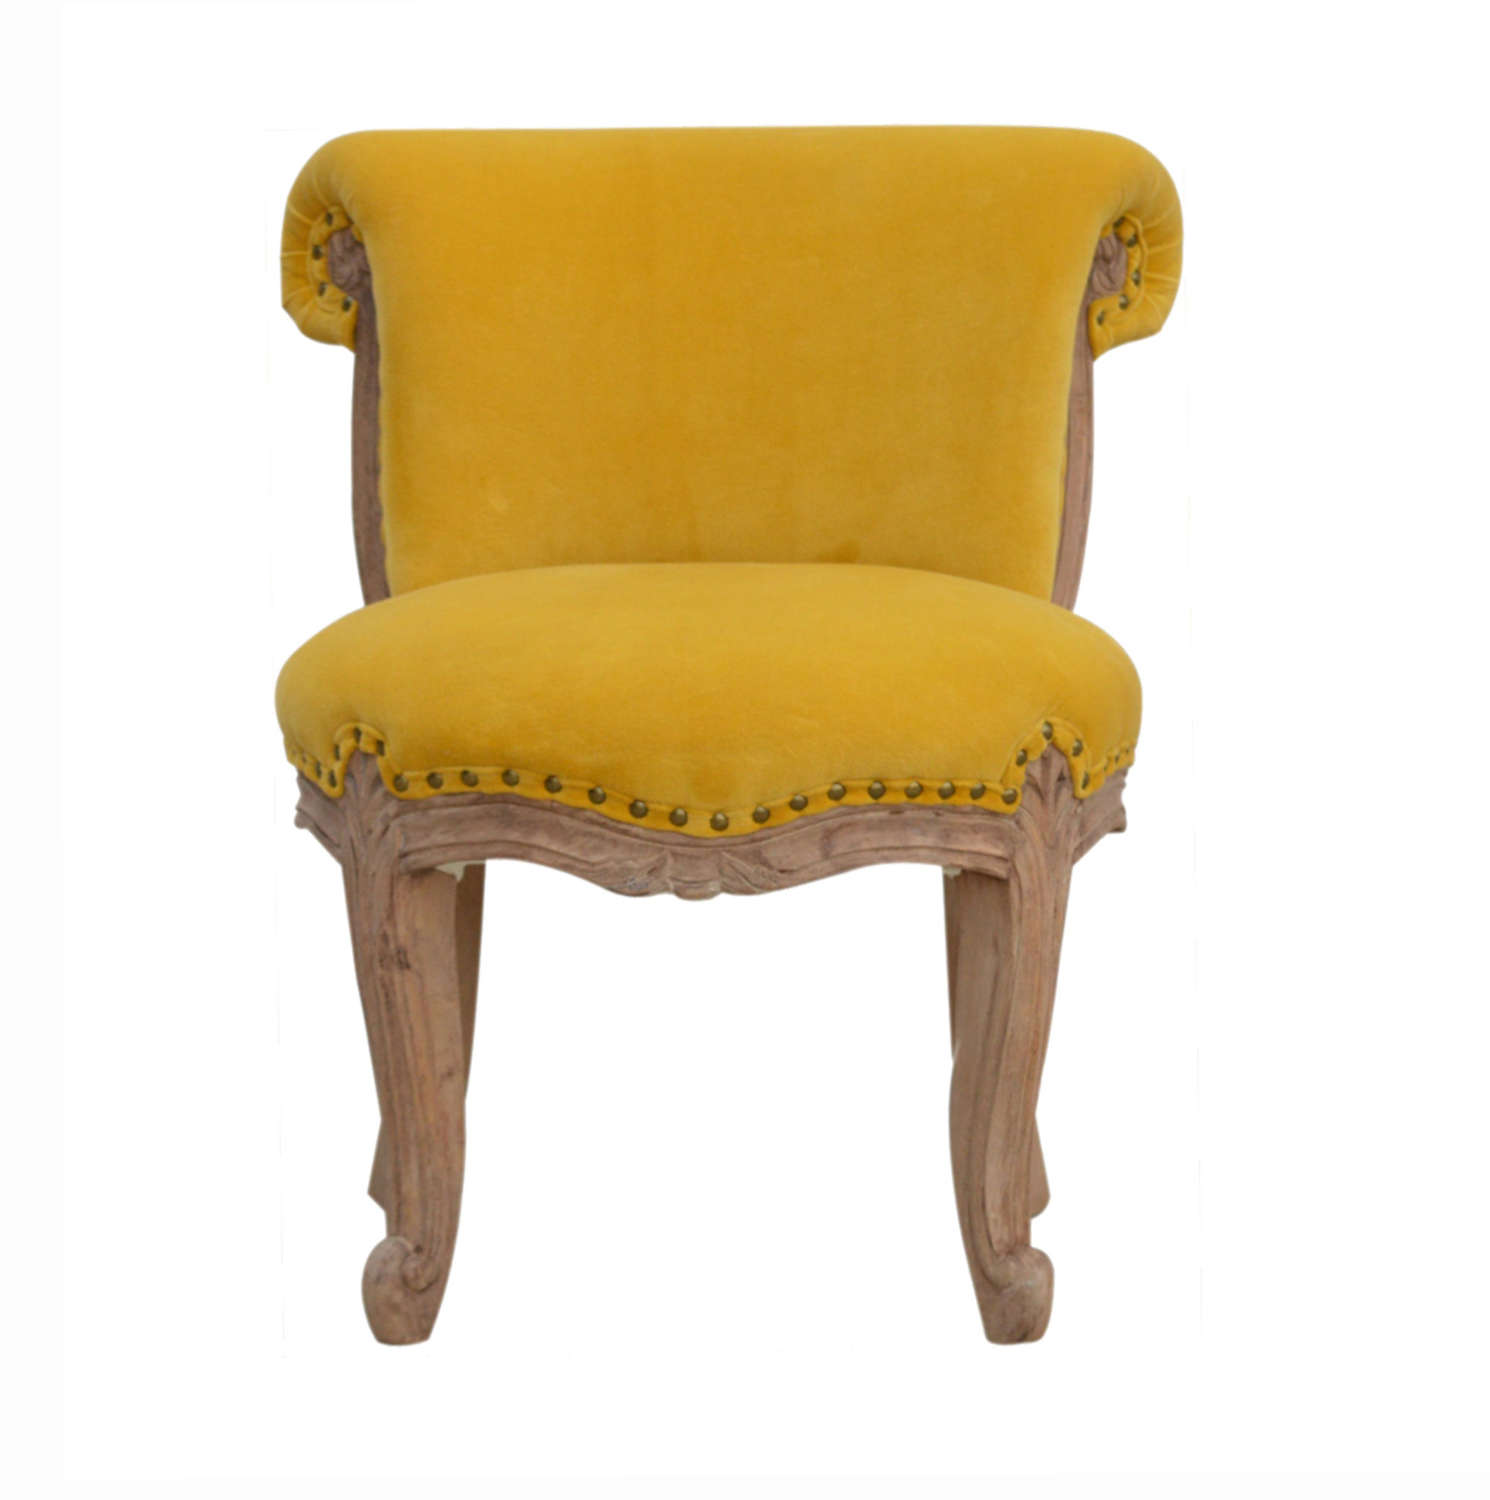 French style Mustard velvet studded chair